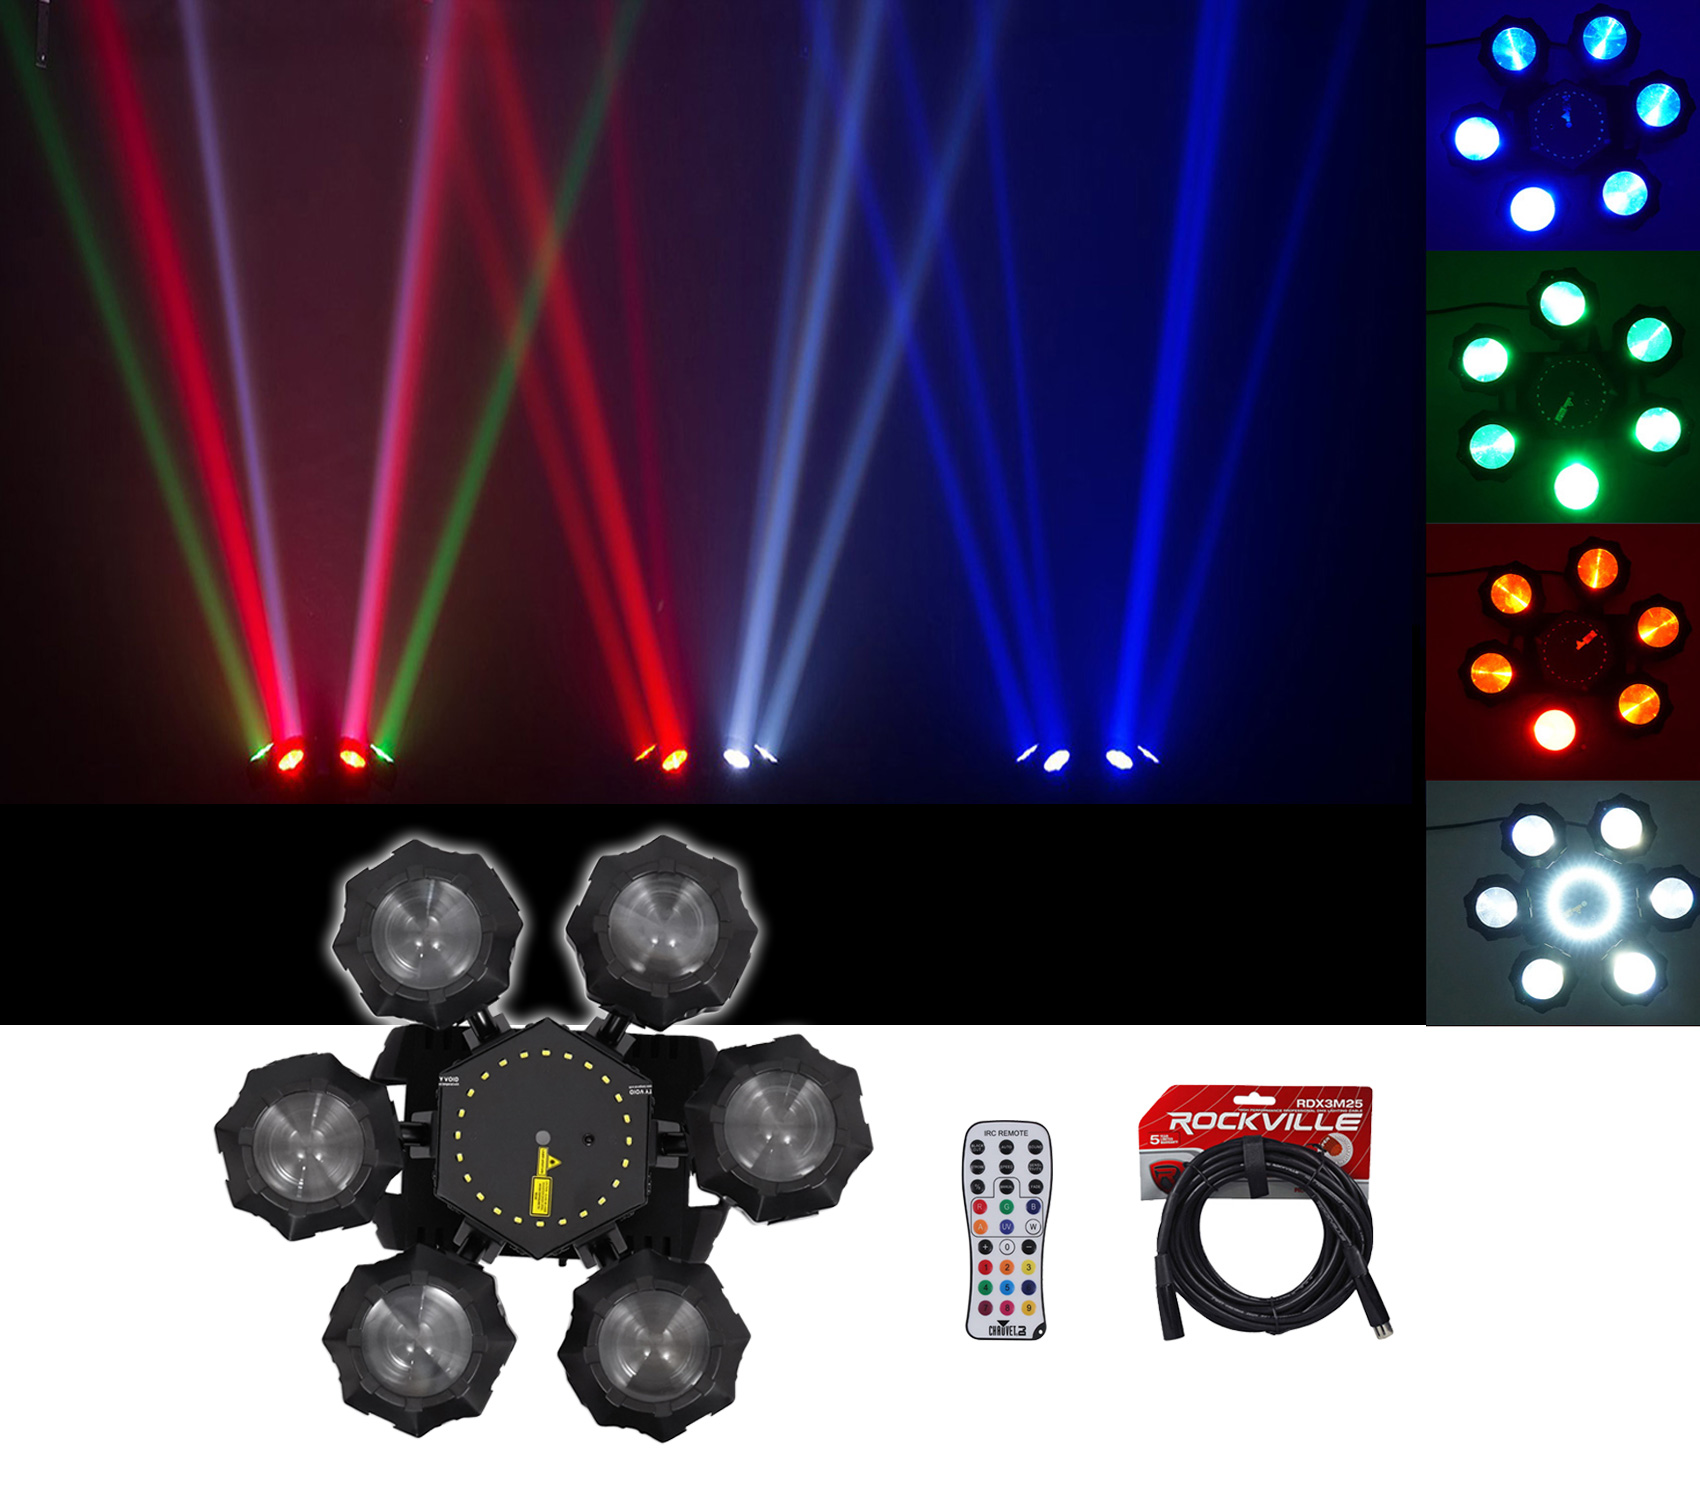 Chauvet DJ Helicopter Q6 DMX Rotating Dance Floor Effect Light + Remote + Cable by CHAUVET